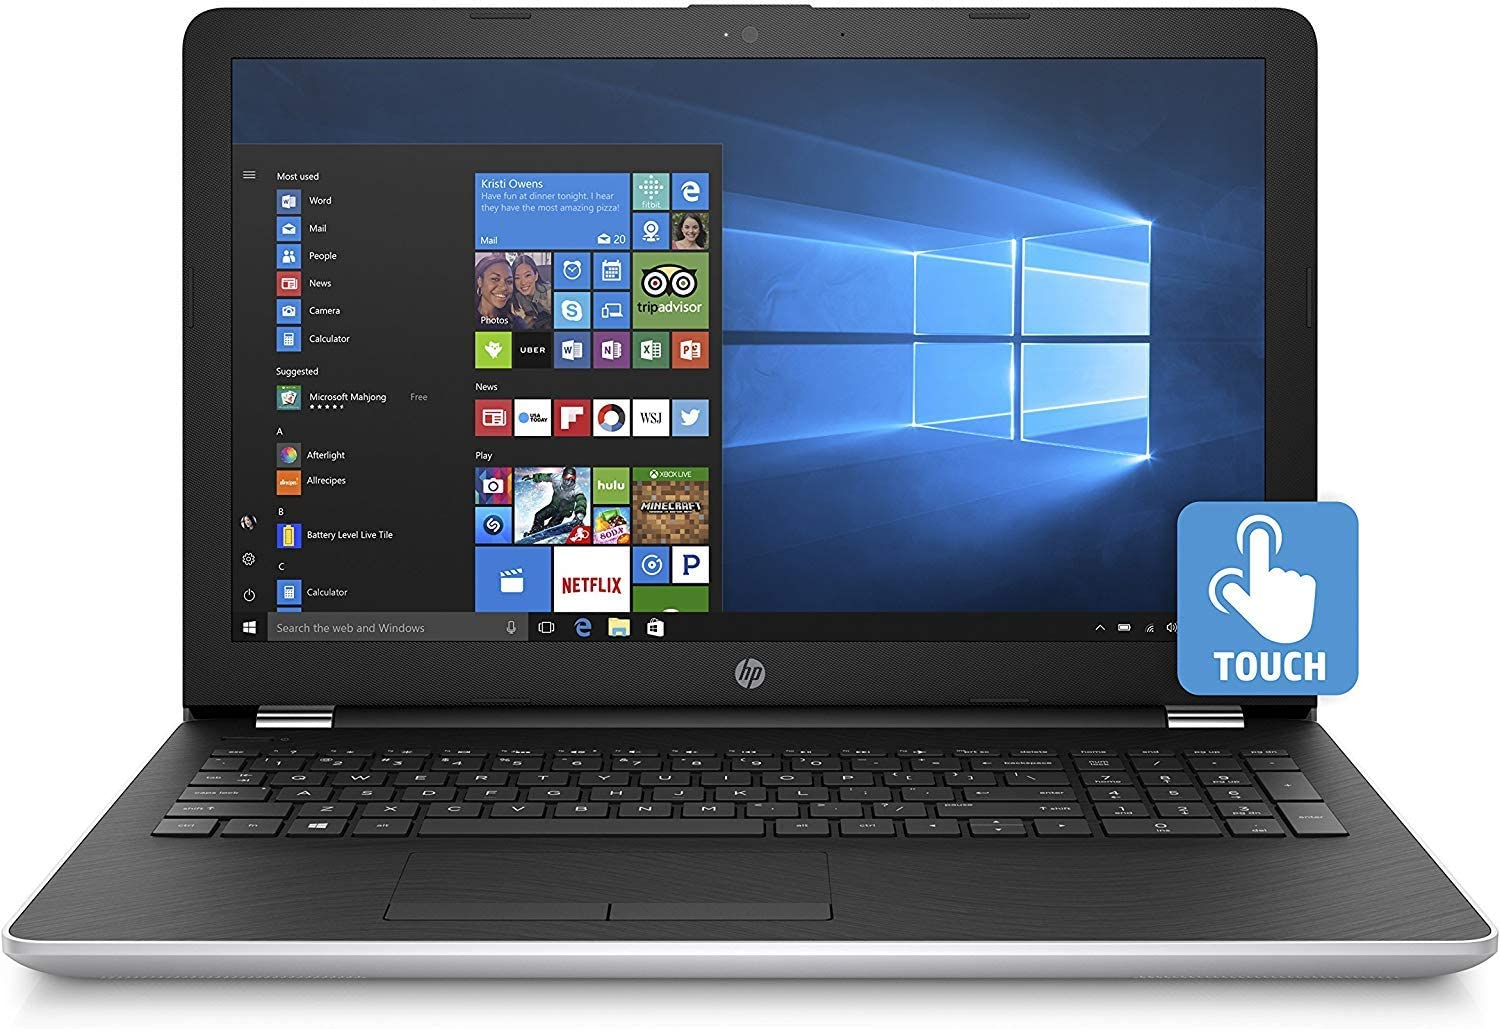 Newest HP 15.6-inch HD Touchscreen Display Laptop PC, Intel Dual Core i3-7100U 2.4GHz Processor, 8GB DDR4 SDRAM, 1TB HDD, Bluetooth, HDMI, 802.11ac WiFi, Windows 10-Natural Silver